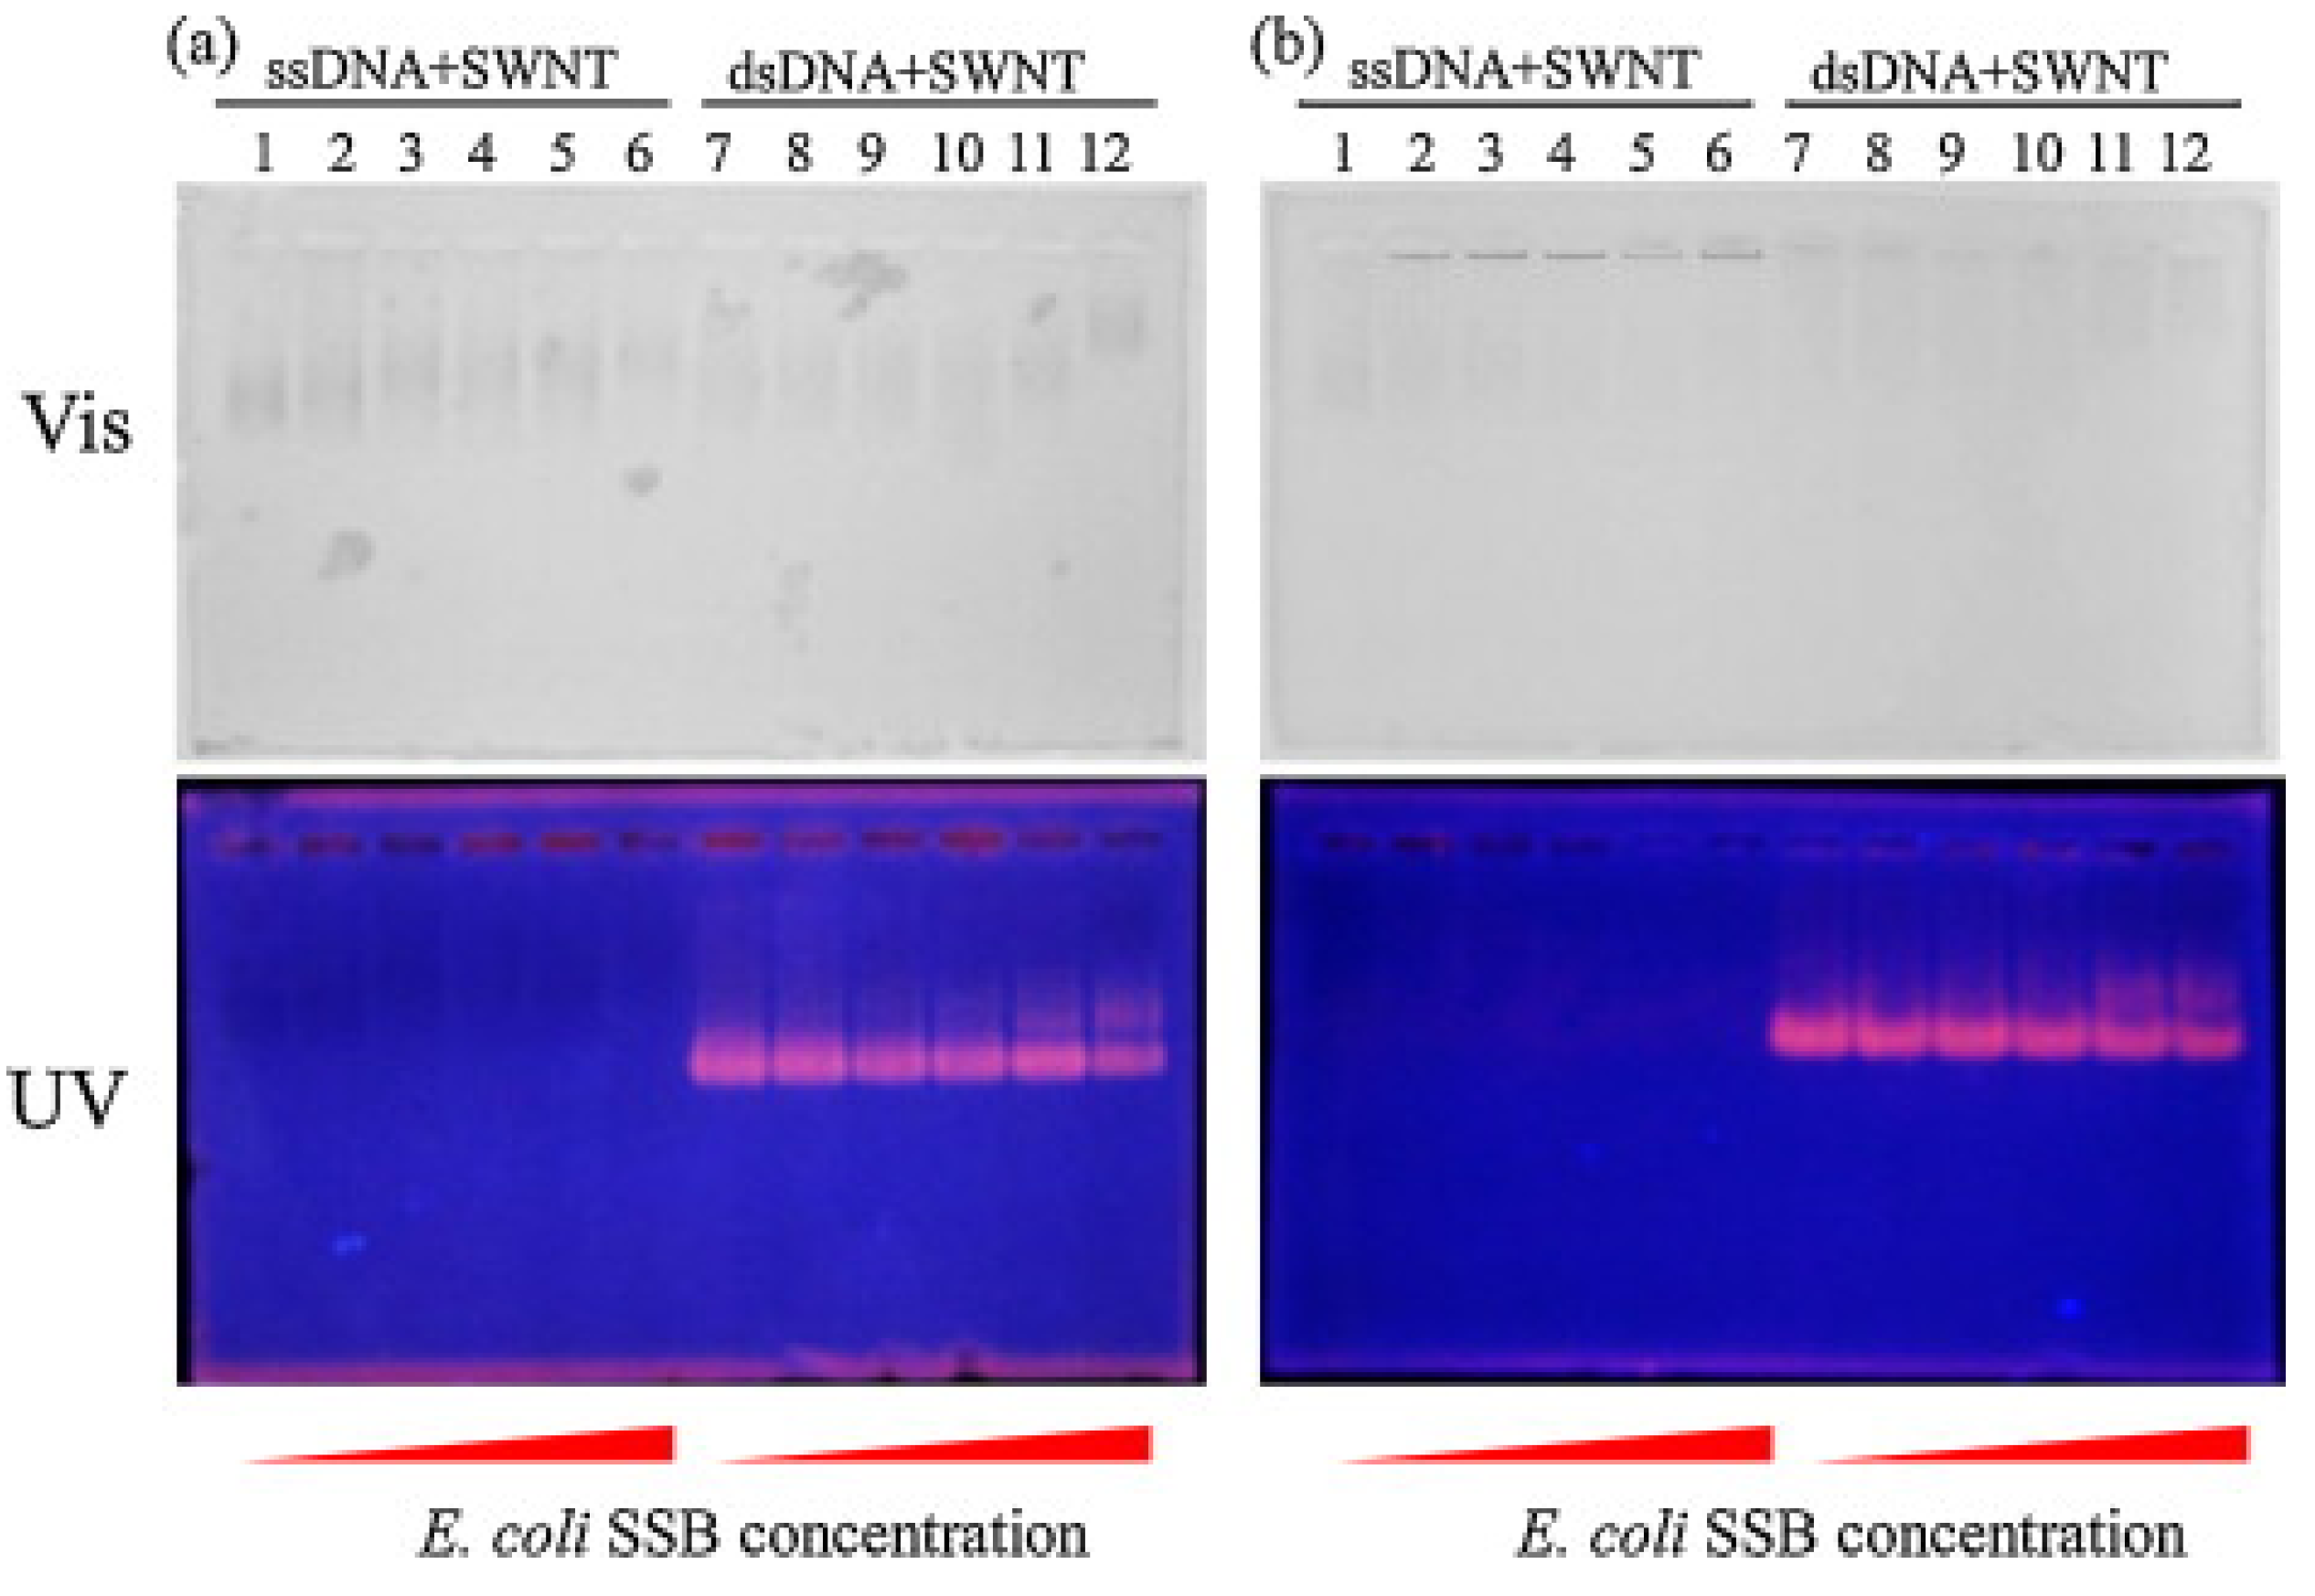 dna research papers full text Cgas conducts micronuclei dna surveillance a collection of four papers now reveals that micronuclear dna is a new cell intrinsic full text | full.